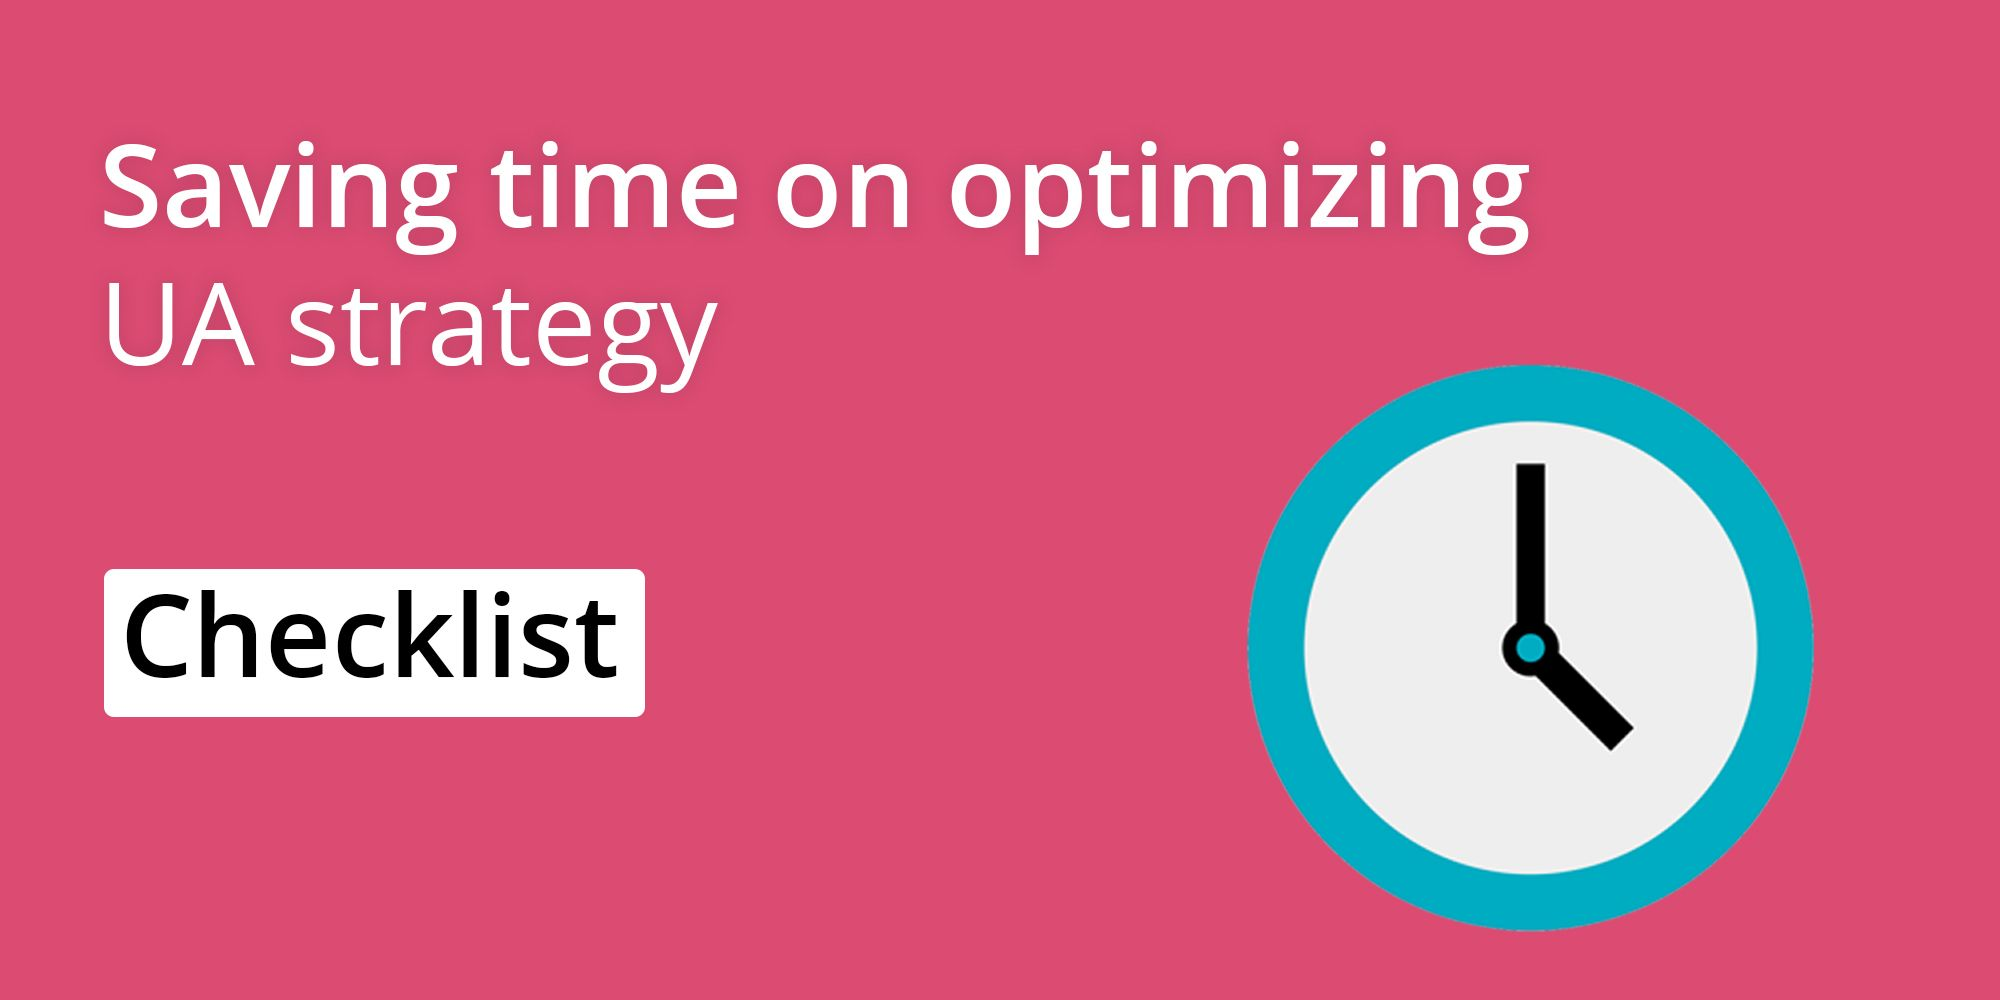 Saving time on optimizing UA strategy | Checklist